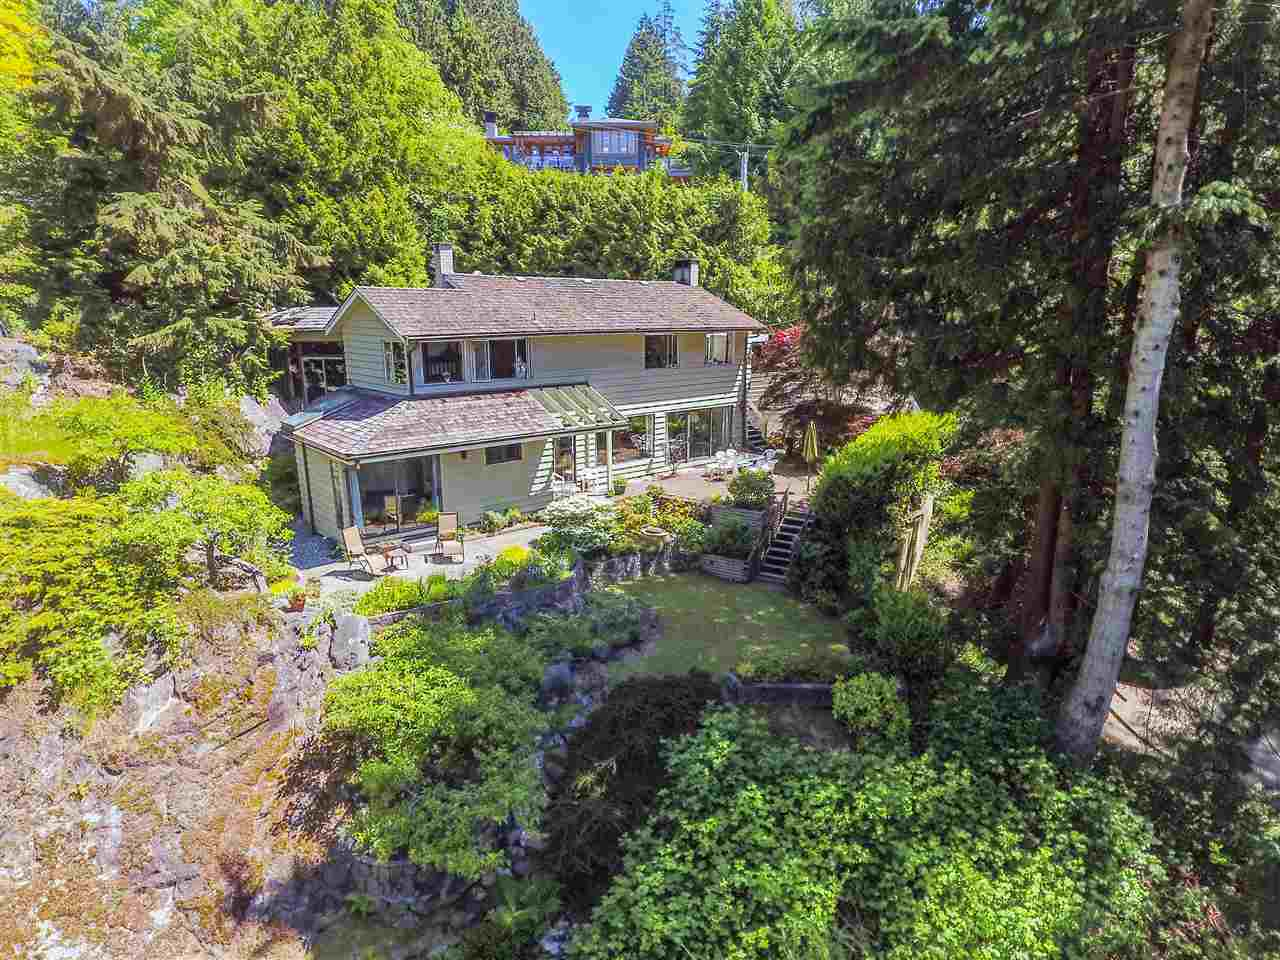 At nature's edge, situated next to Klootchman Marine Park, west of Lighthouse Park, this well cared for home is ripe for renovation or live-in and plan your dream home. Very unique home with an indoor pool, lovely stone terraces, water views and total peace and serenity.